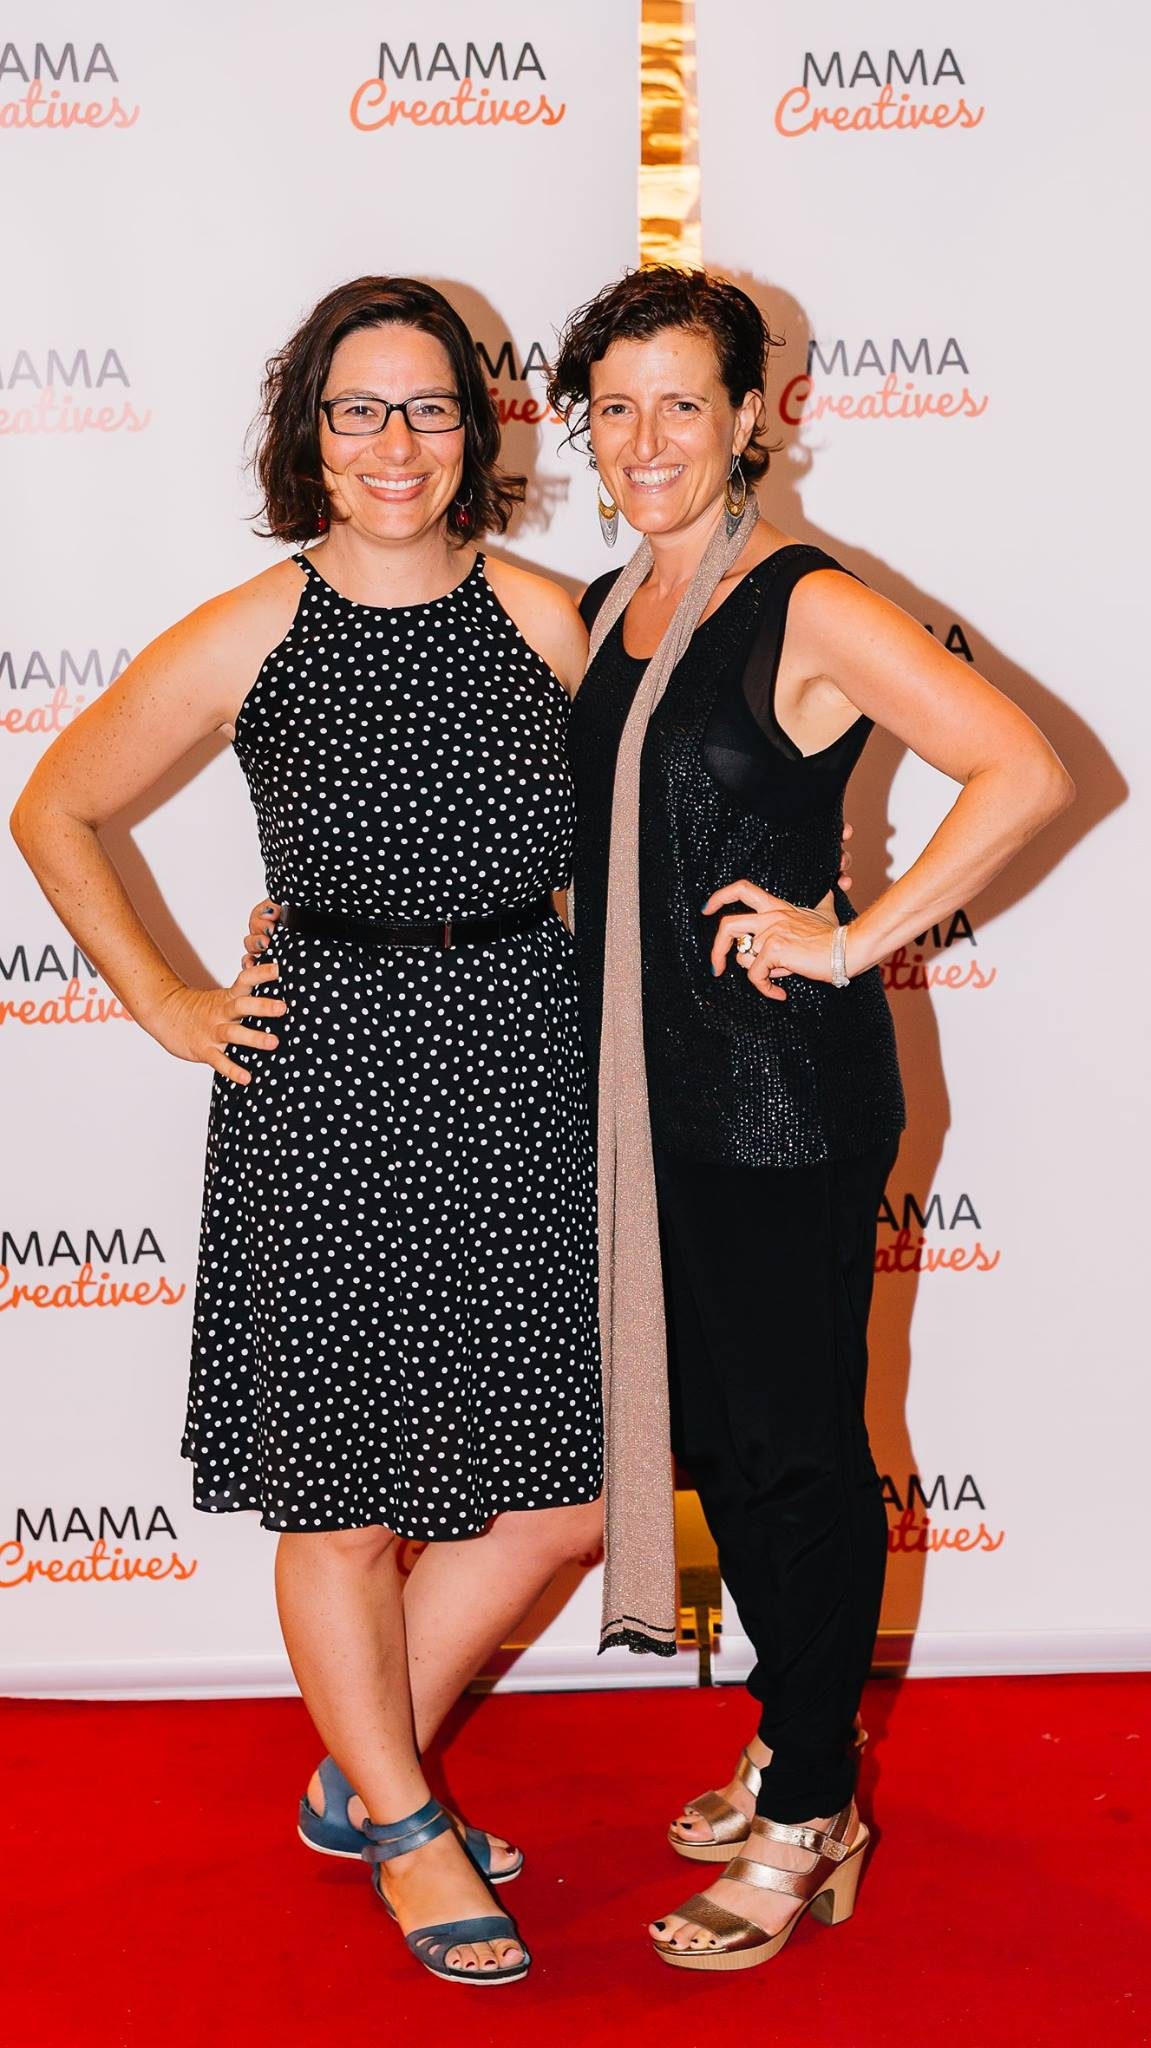 Two fab creative mamas — with Bianca Havas and Shelley Millingen.